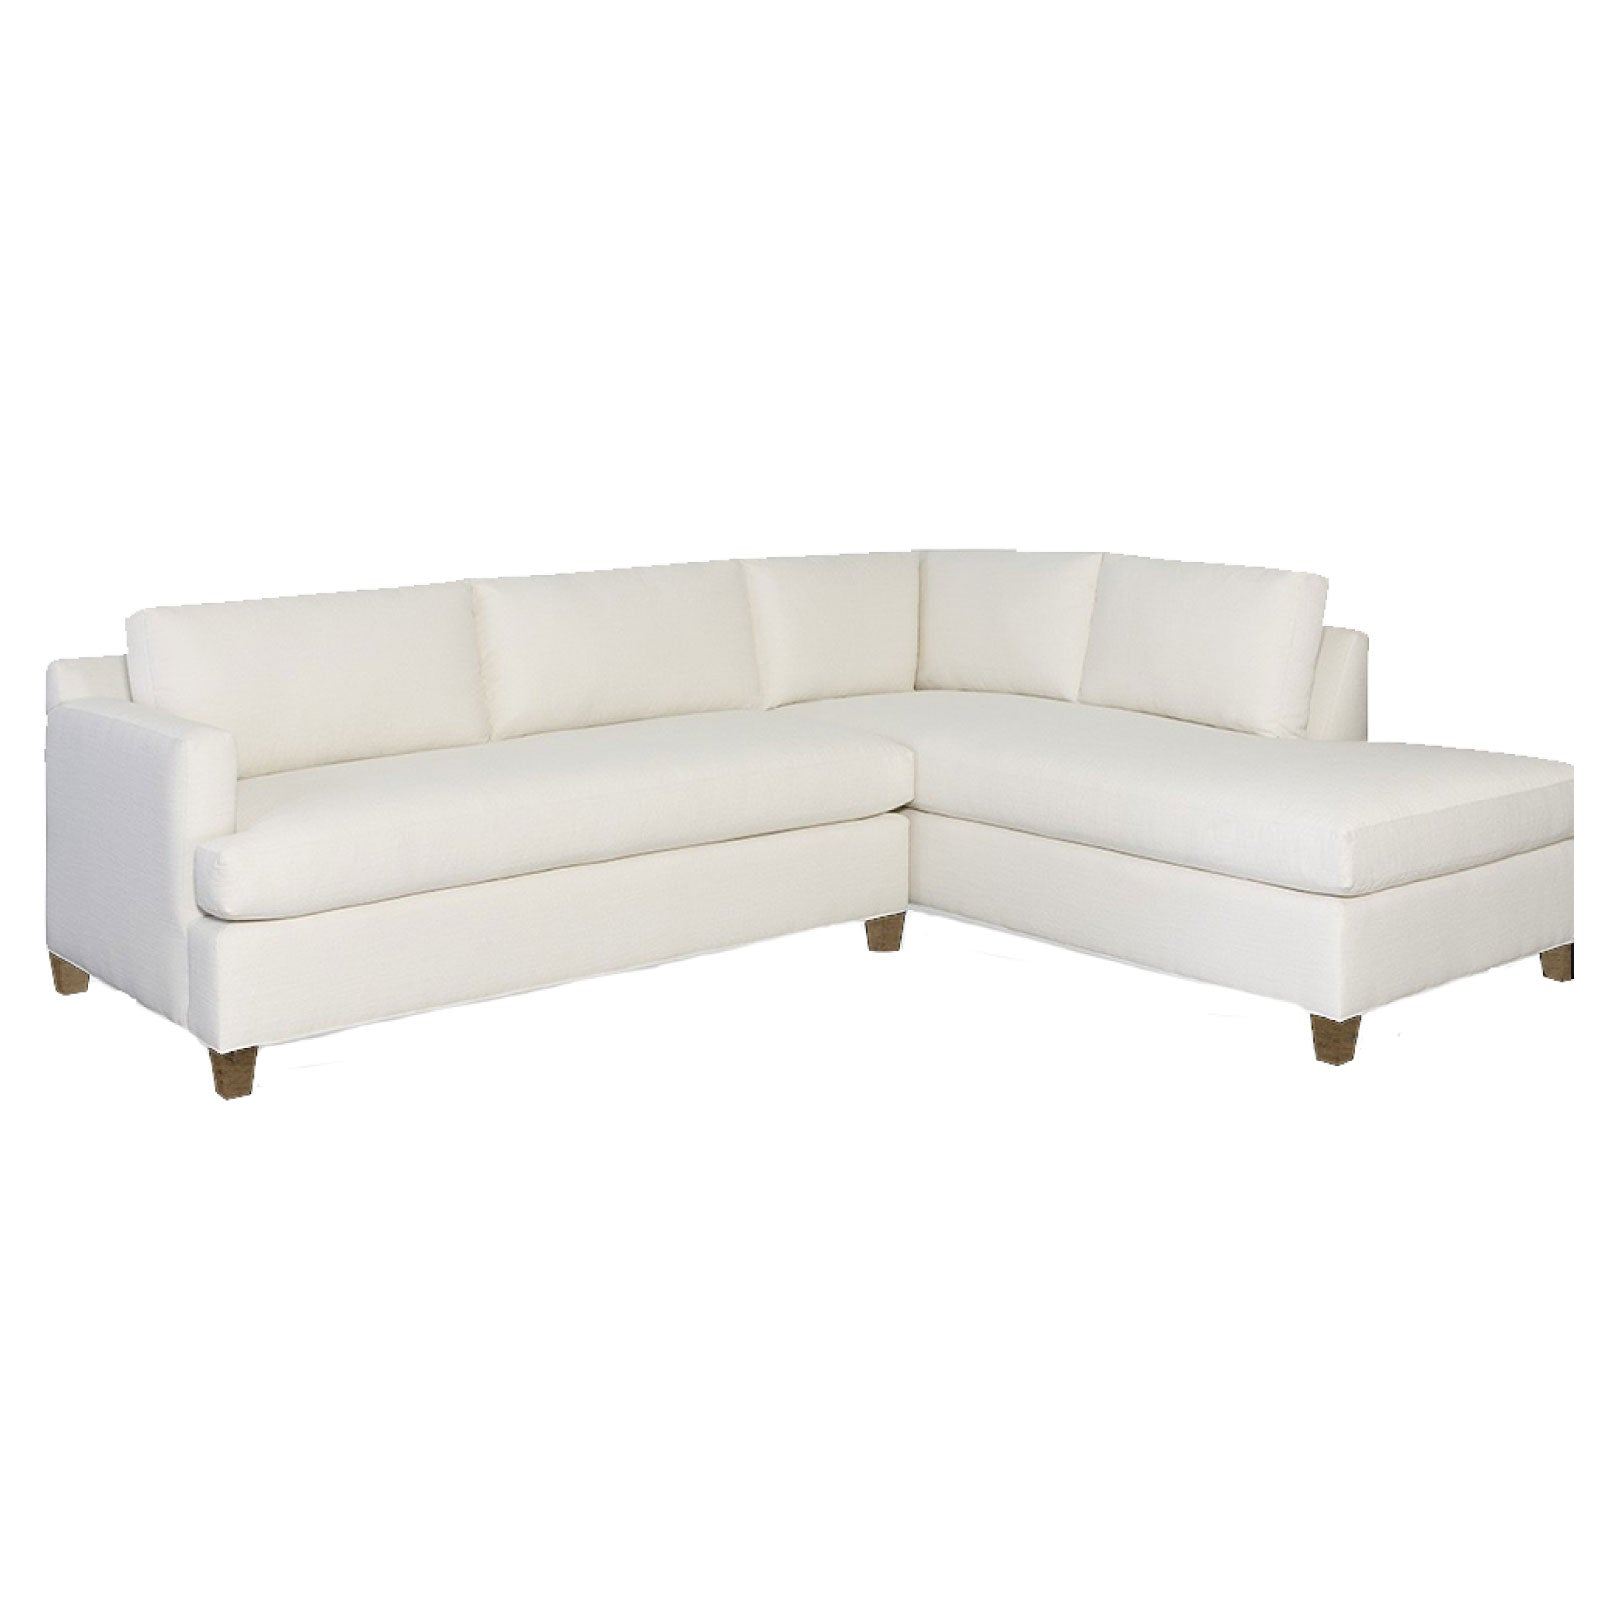 Colin Right Chaise Sectional